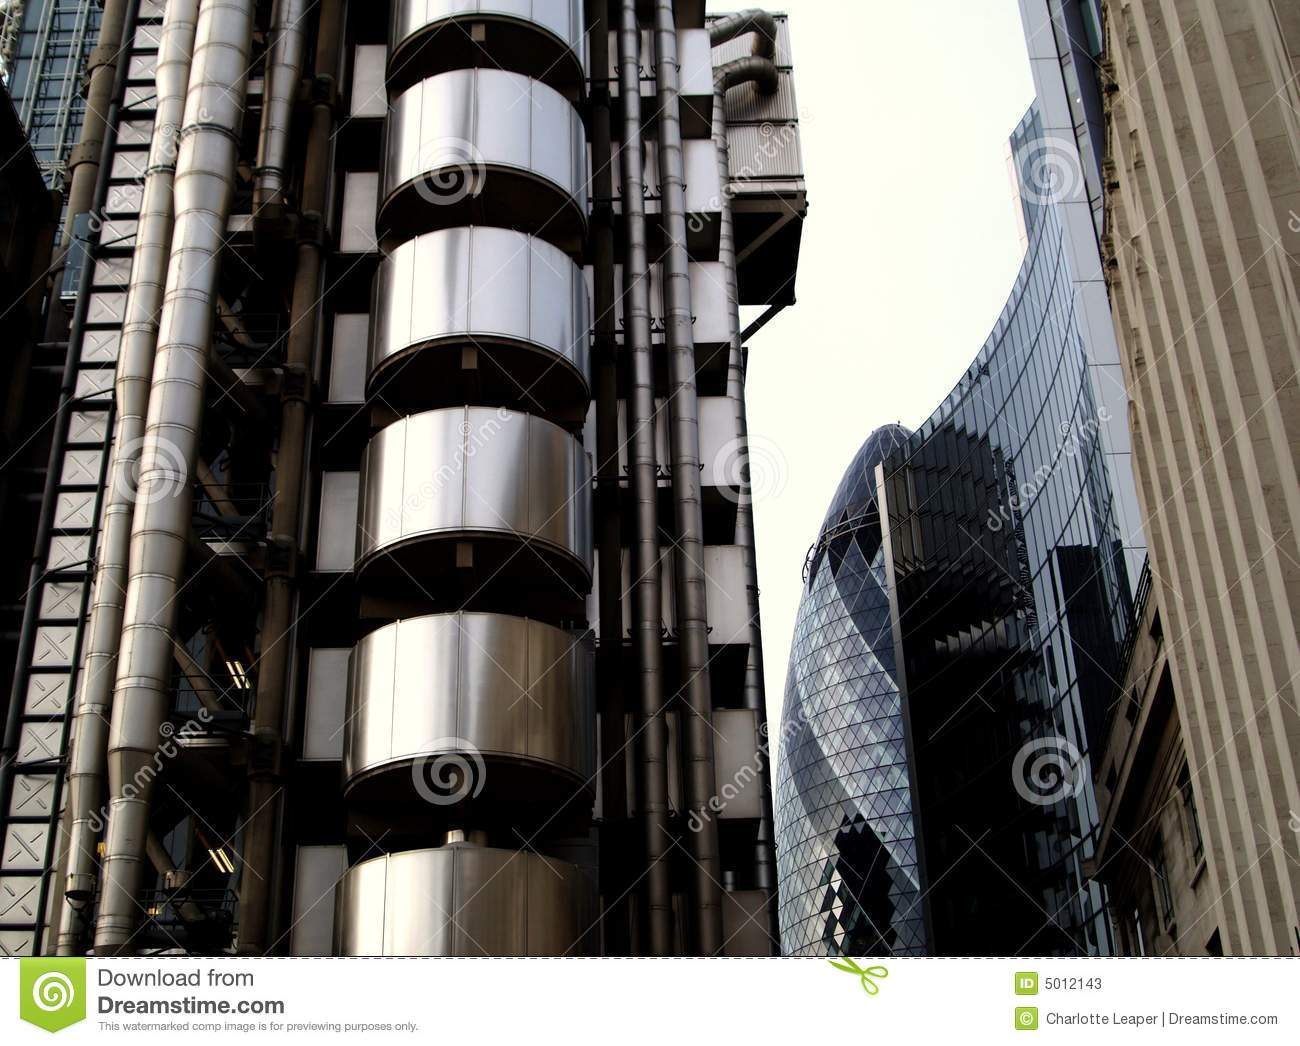 Modern Architecture In London london modern architecture stock photos - image: 5012143